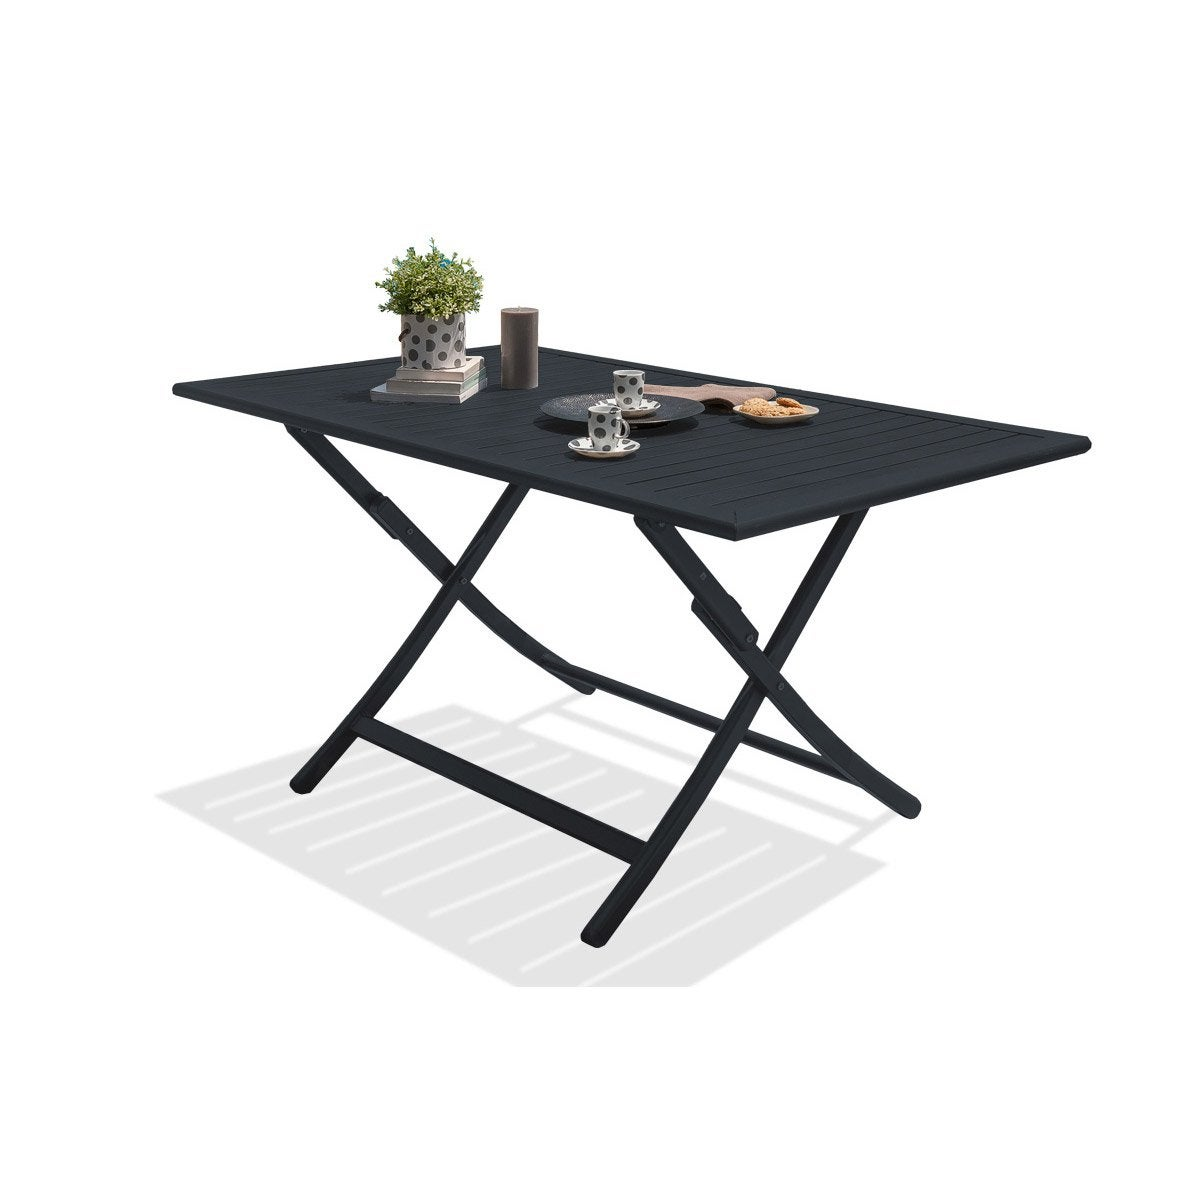 Table de jardin marius rectangulaire gris anthracite 4 6 for Table de nuit leroy merlin